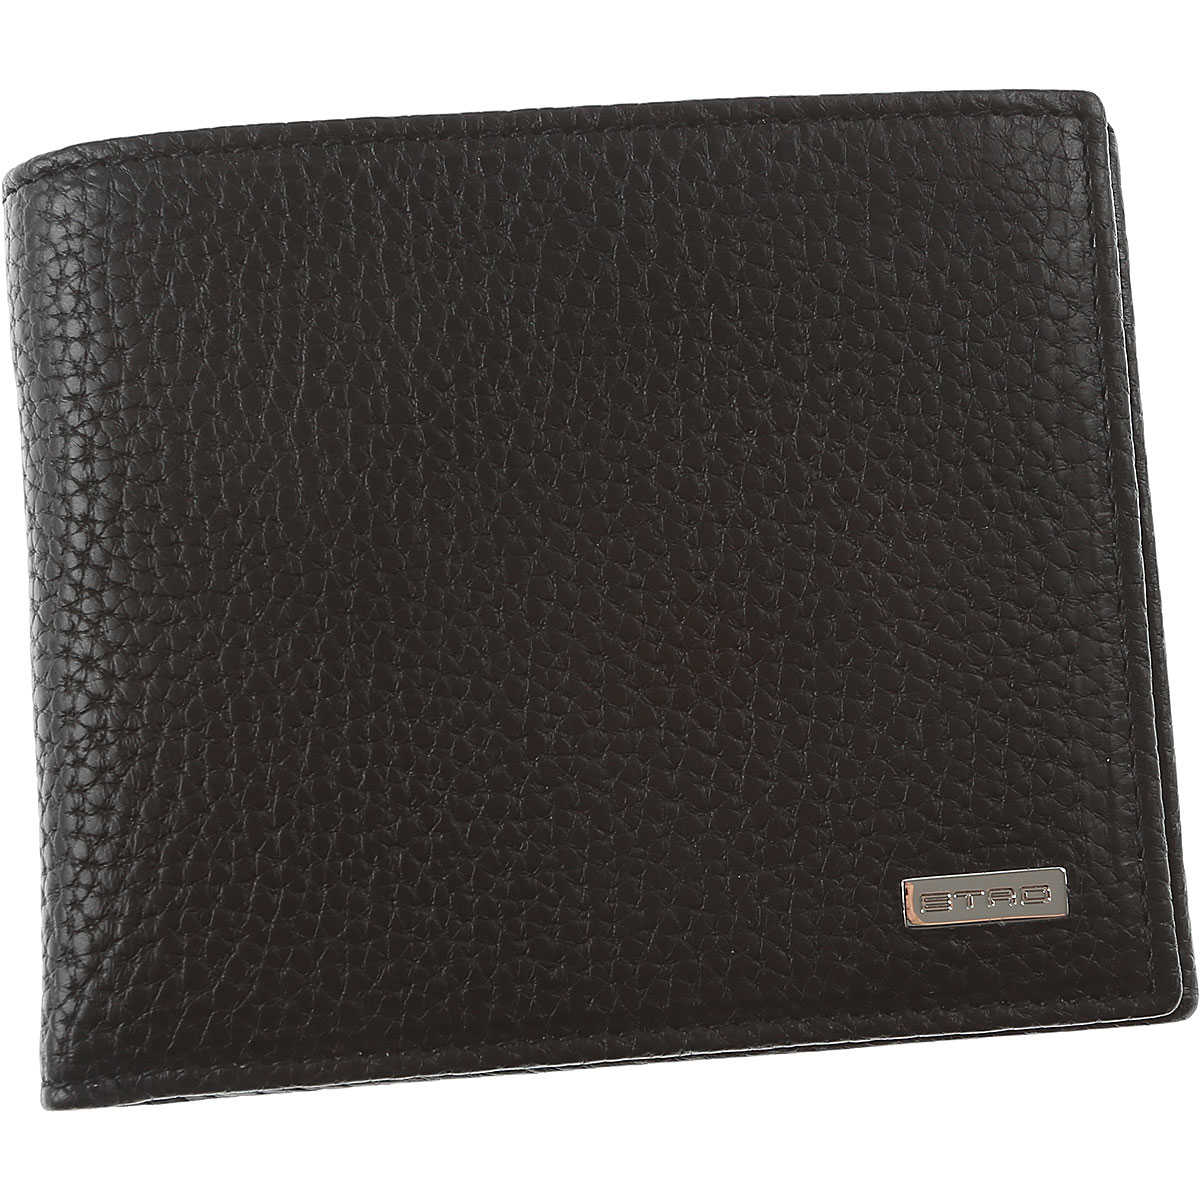 Etro Wallet for Men On Sale Black SE - GOOFASH